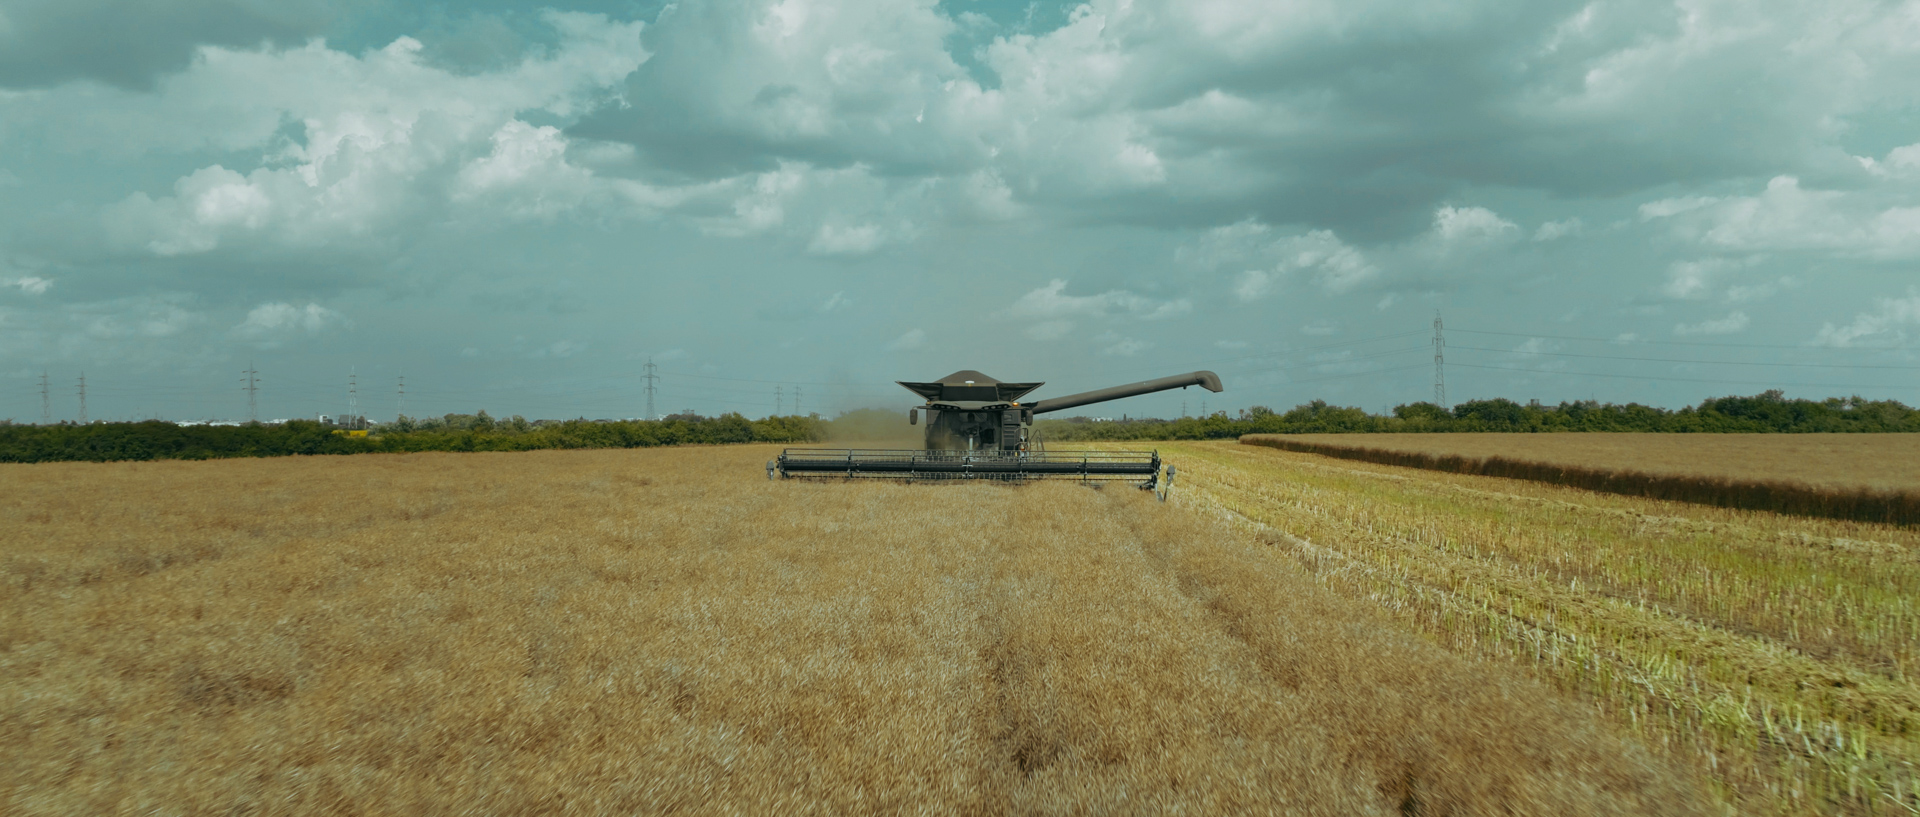 fendt ideal combine mewi services video by popotam productions video agency timisoara after color grading